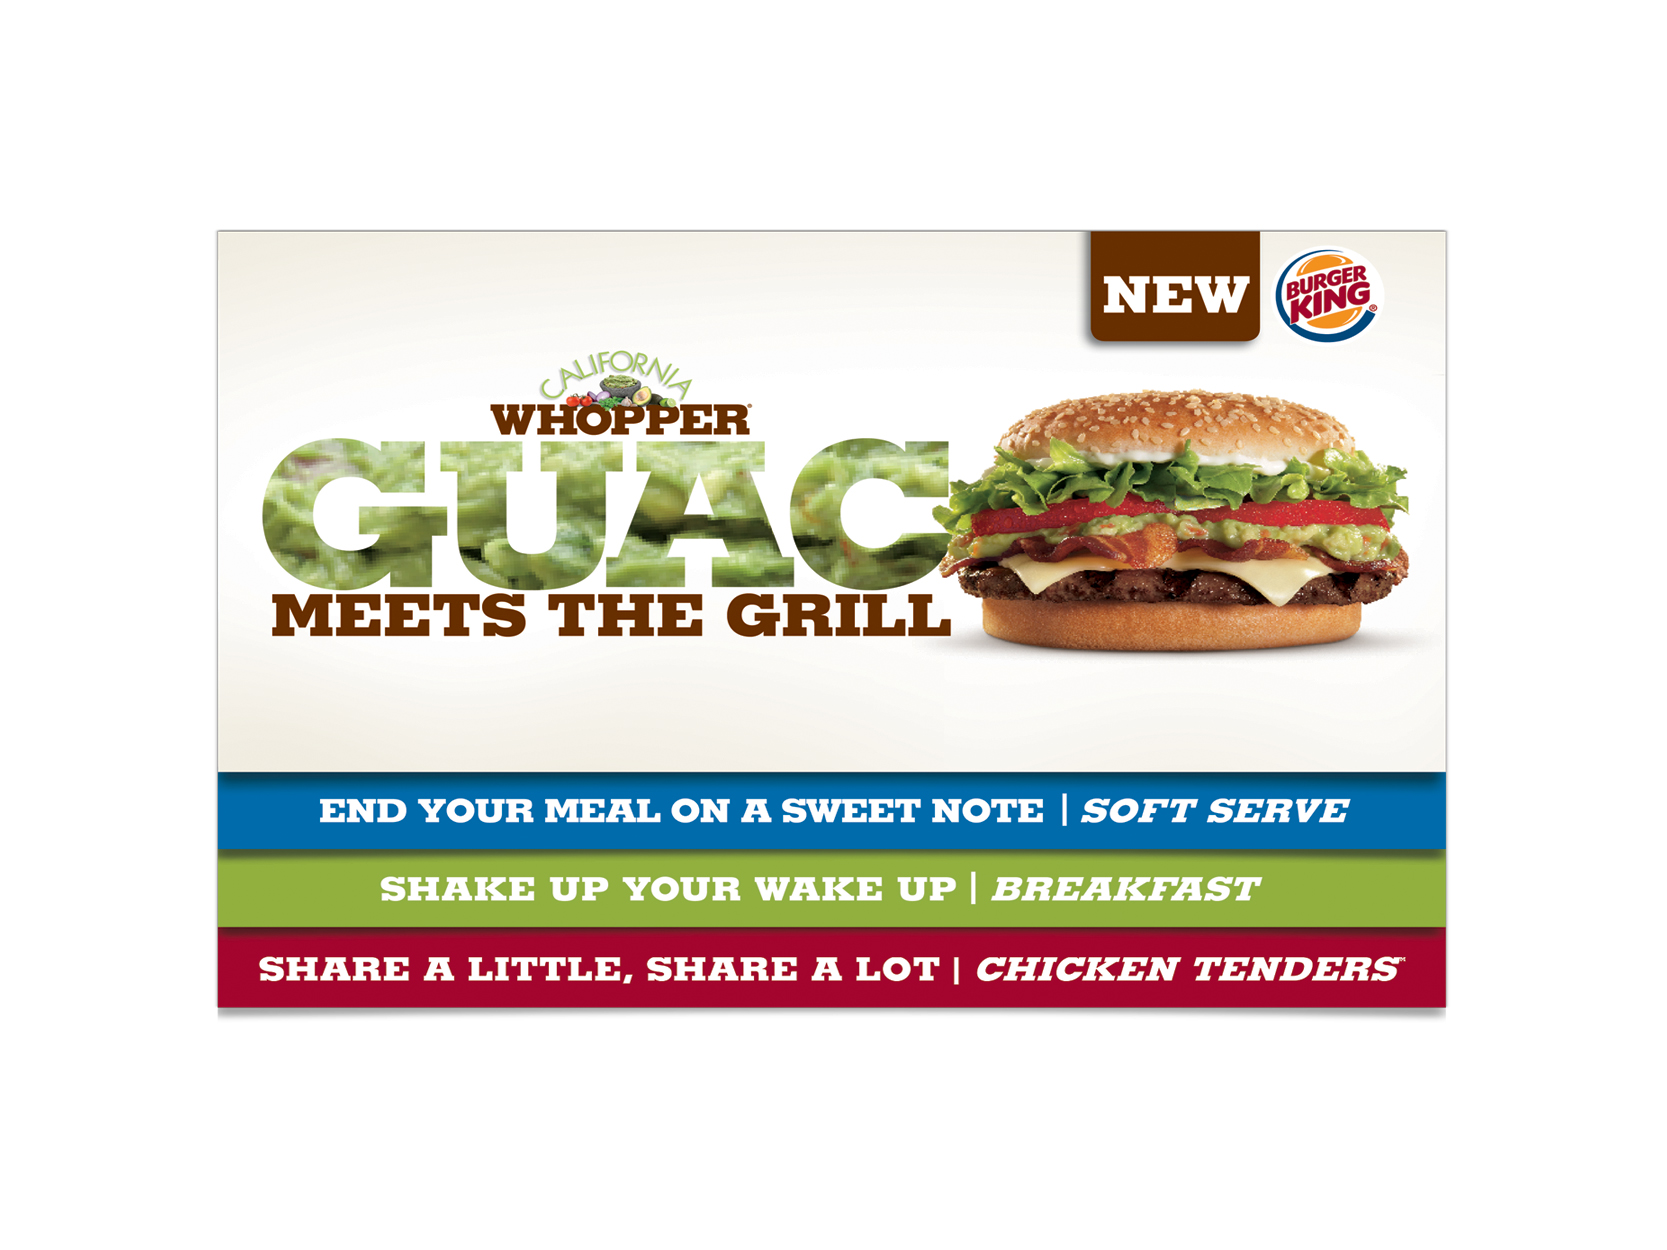 BK_GiftCards_0001_Image_2